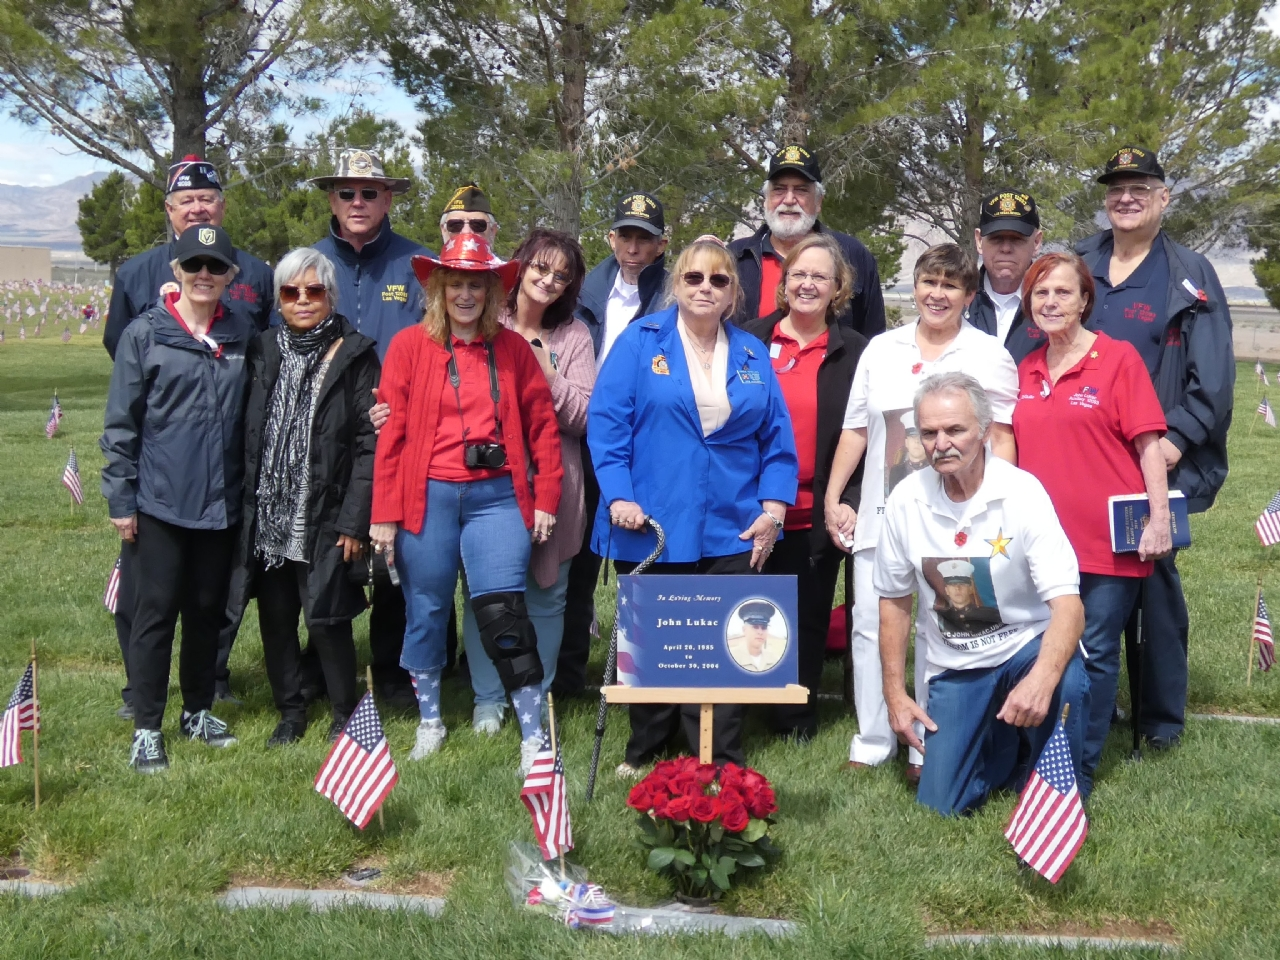 Memorial Day Event honoring Post 12093 namesake USMC PFC John Lukac.